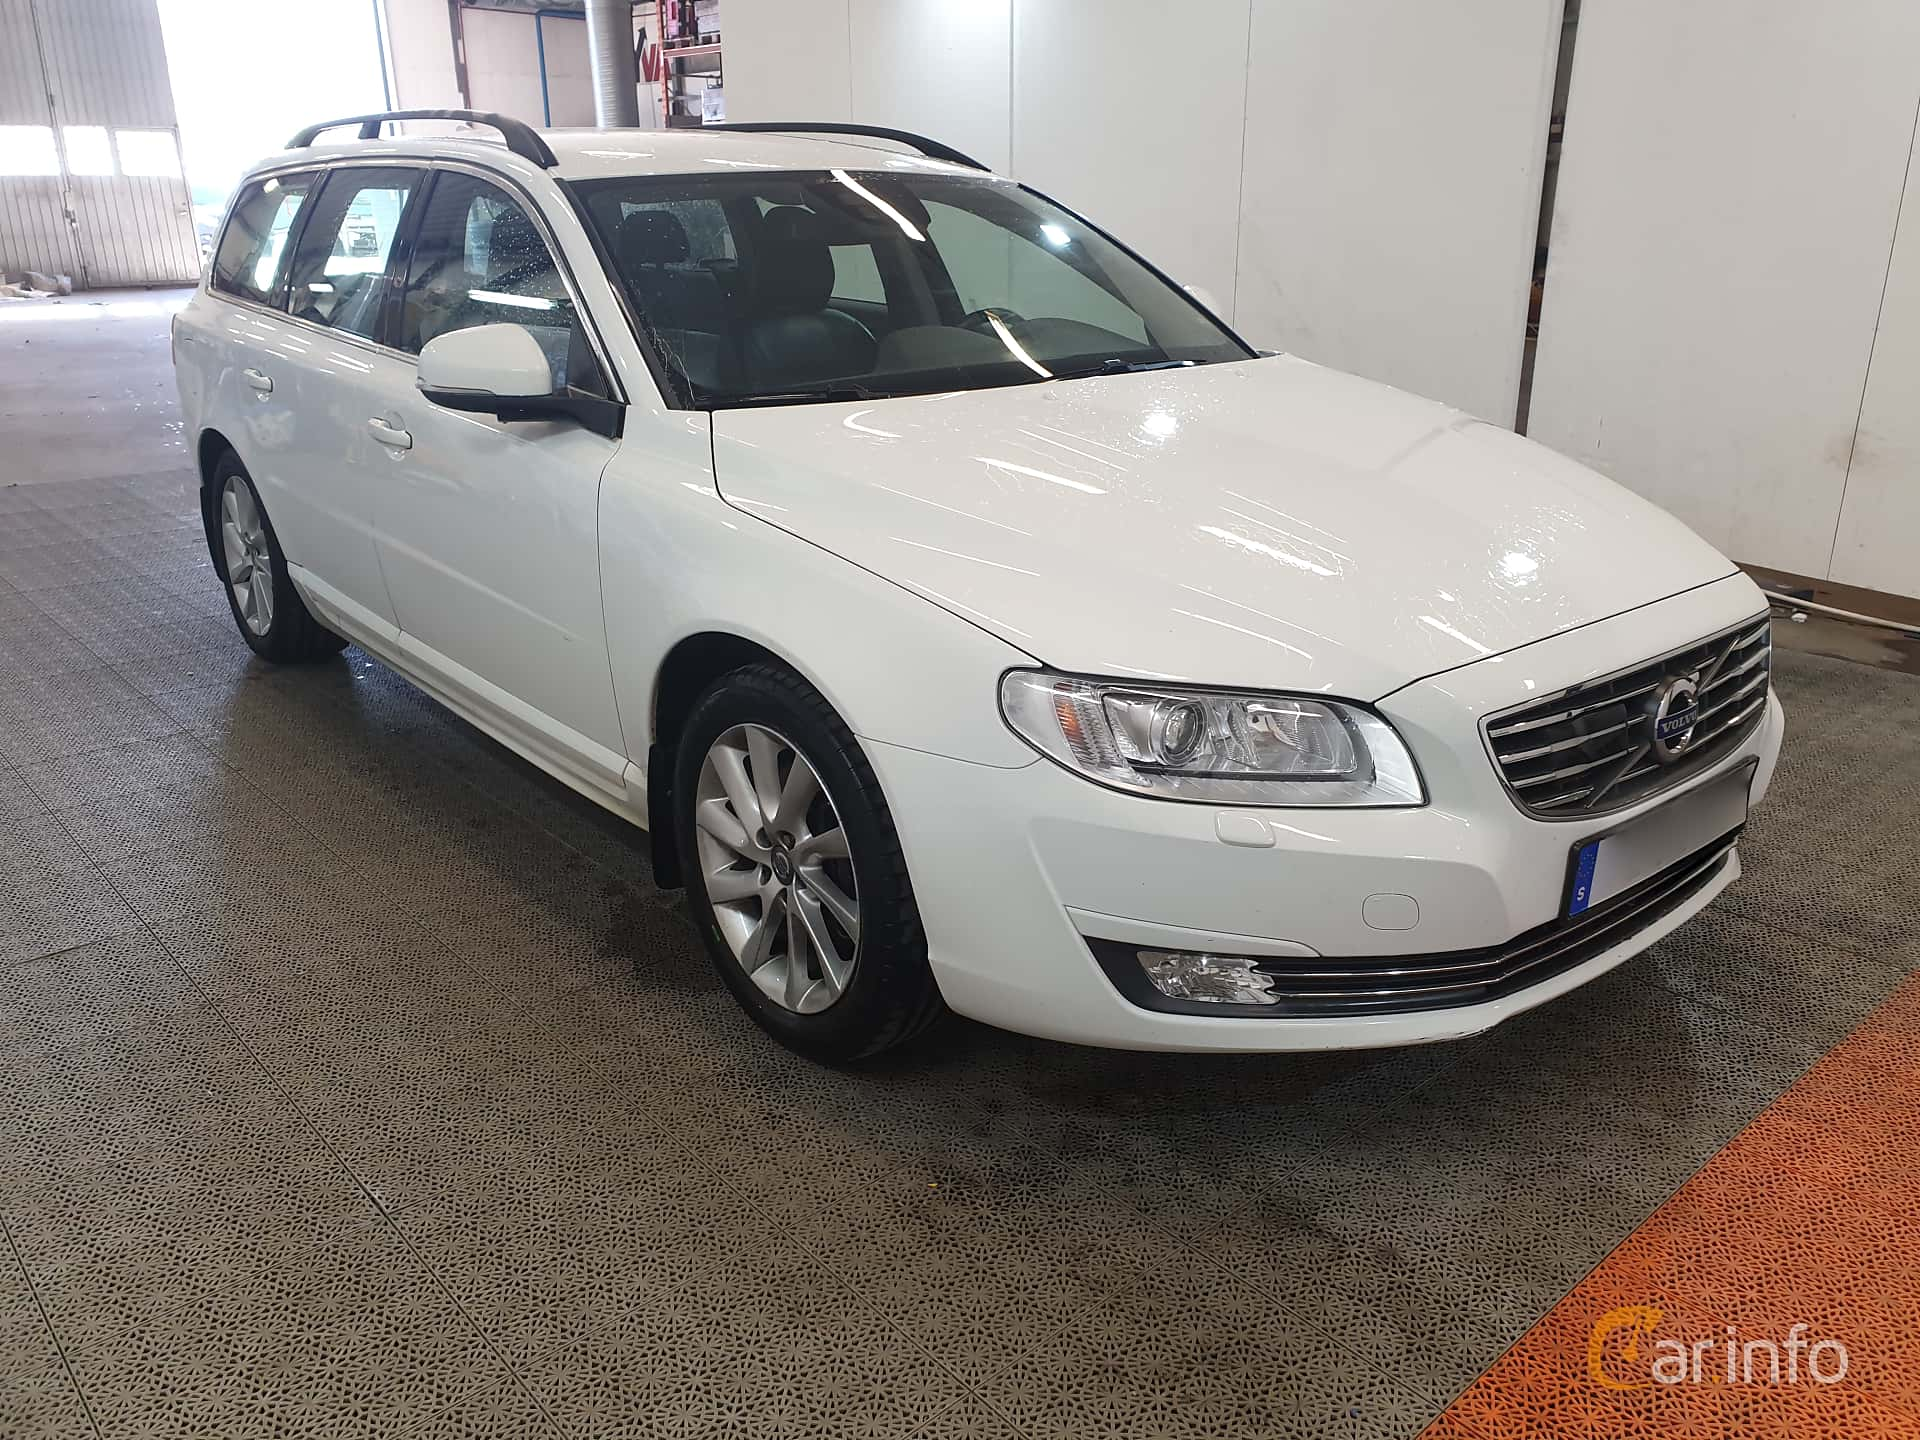 Volvo V70 D4 AWD Geartronic, 181hp, 2016